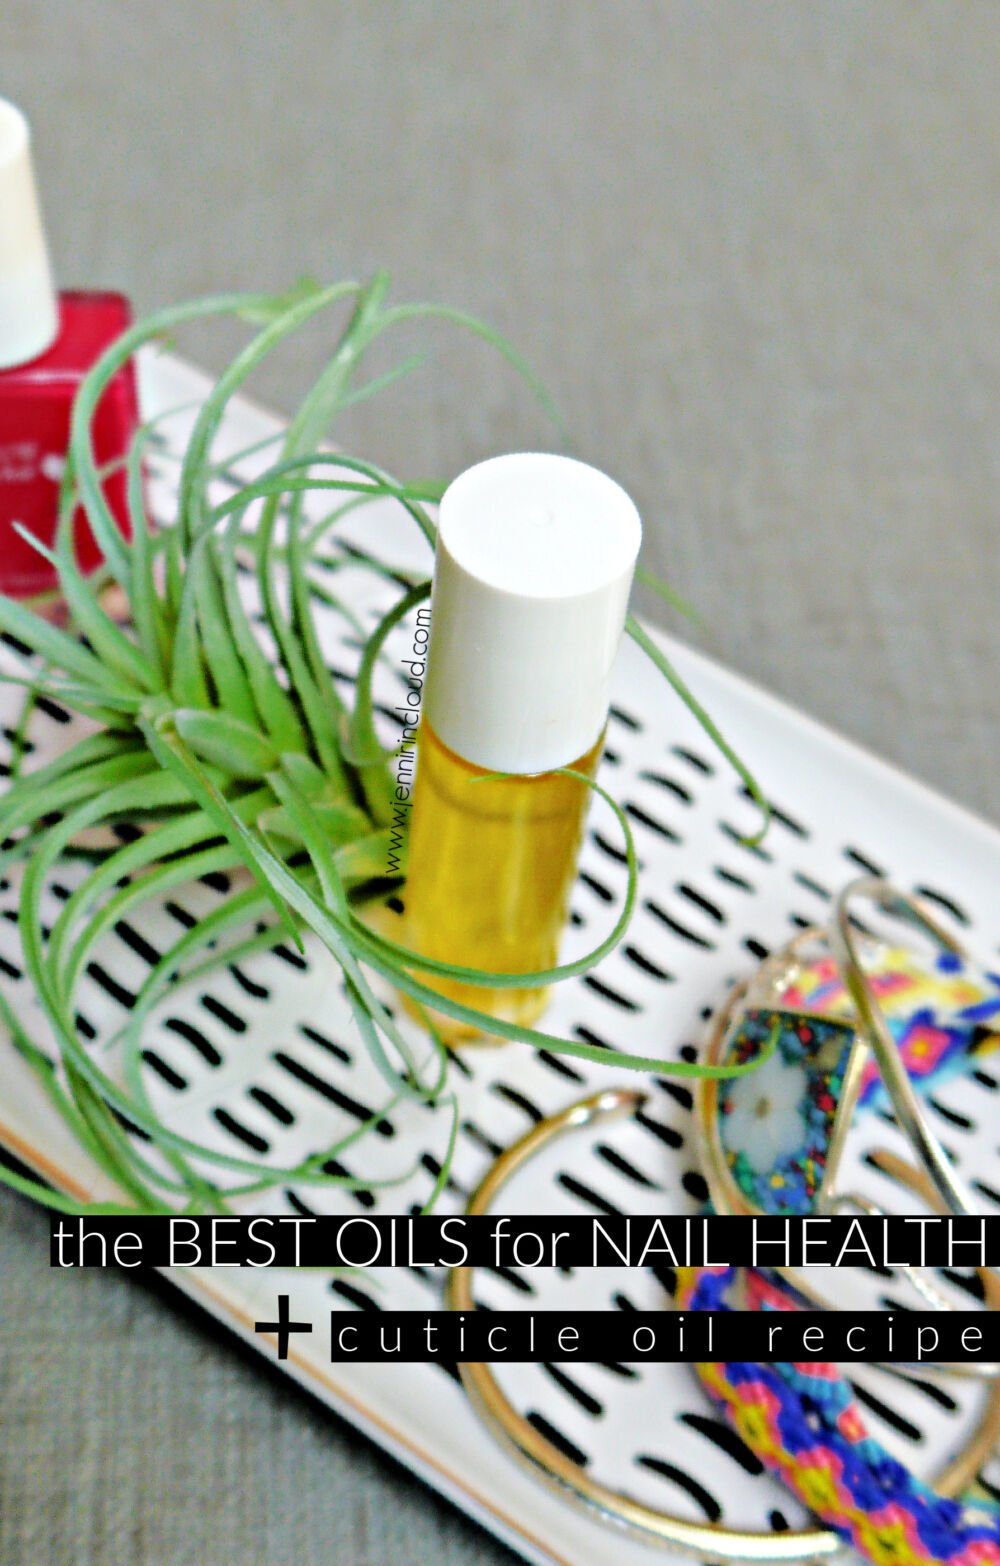 The Best Oils for Nails and DIY Cuticle Oil